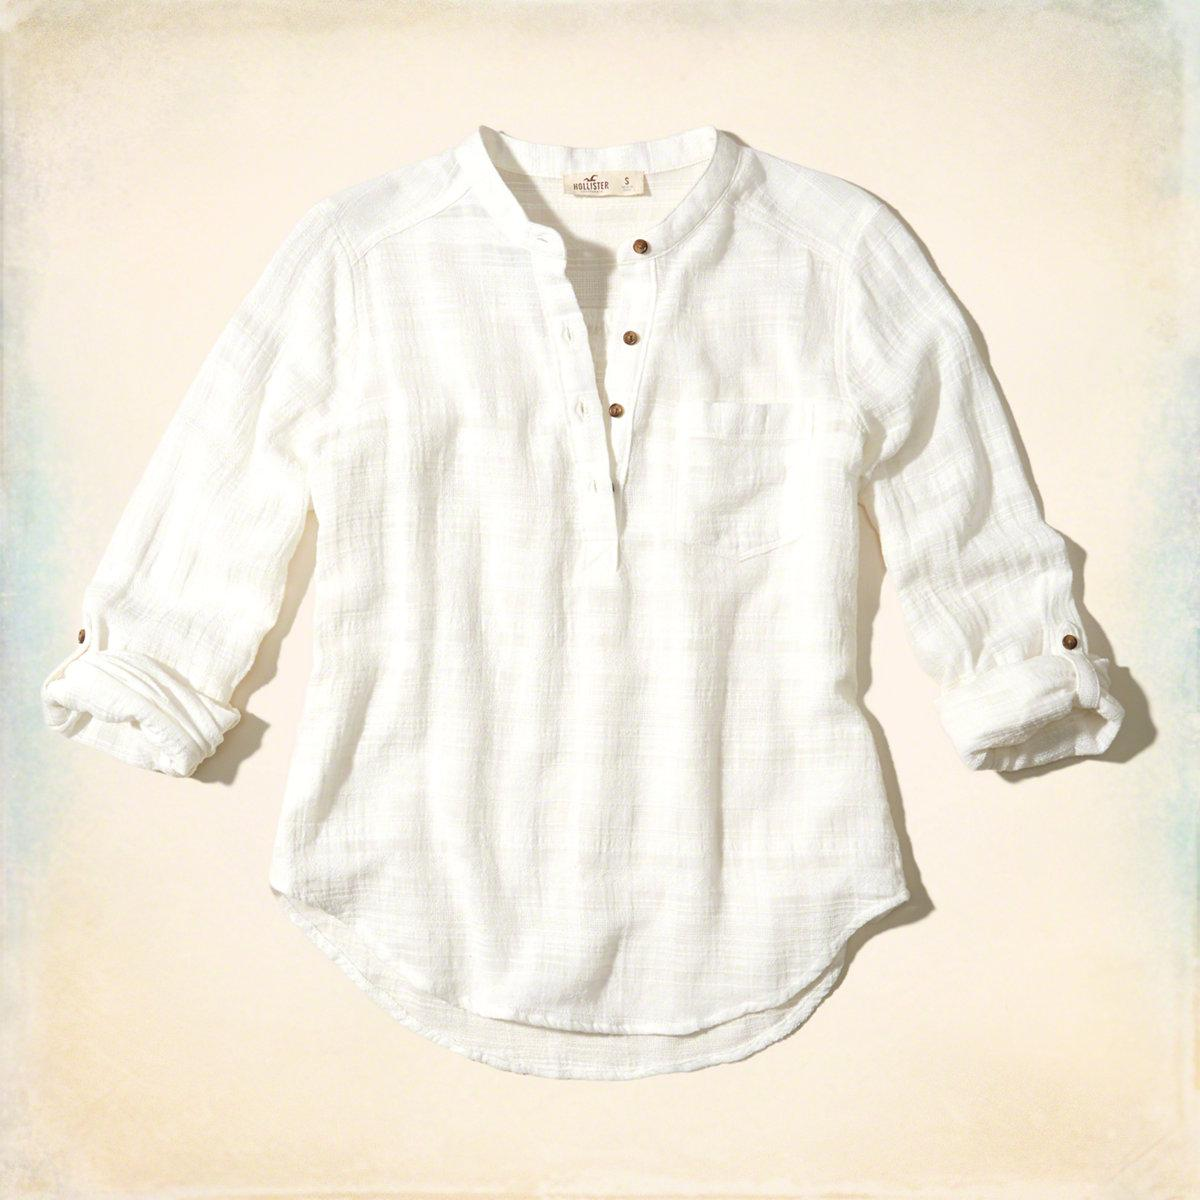 e6000fb7f25 Lyst - Hollister Textured Cotton Popover Shirt in White